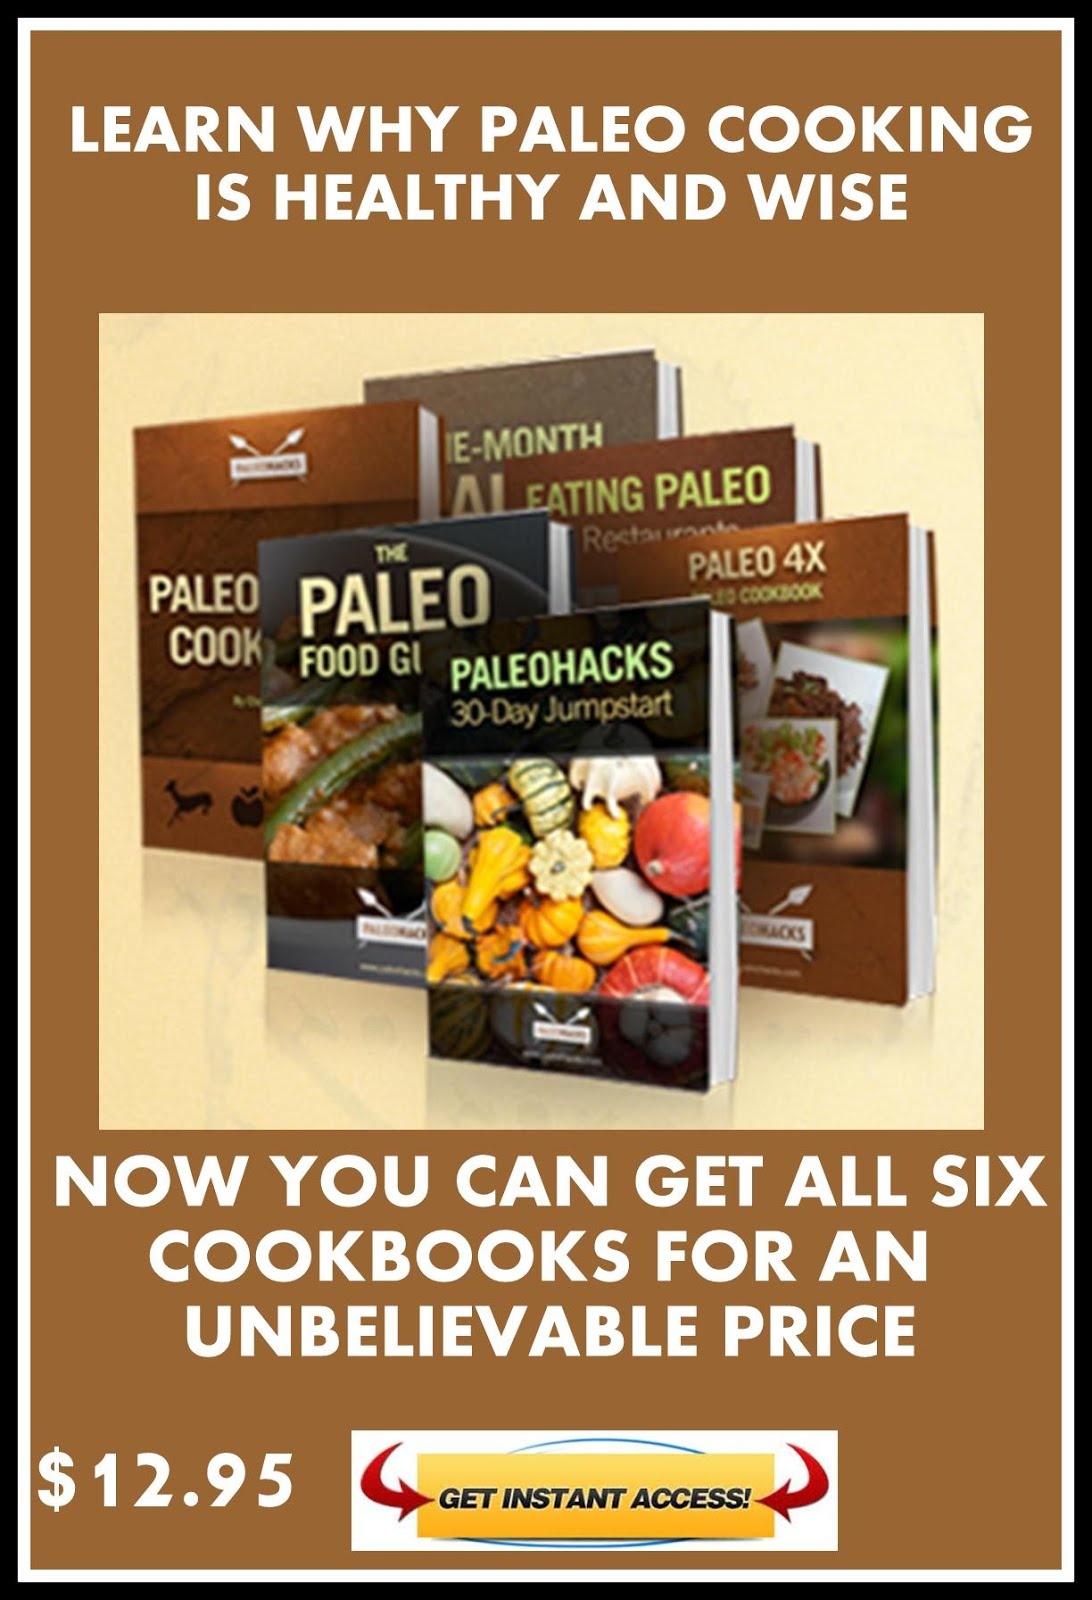 LEARN WHY EATING PALEO IS HEALTHY